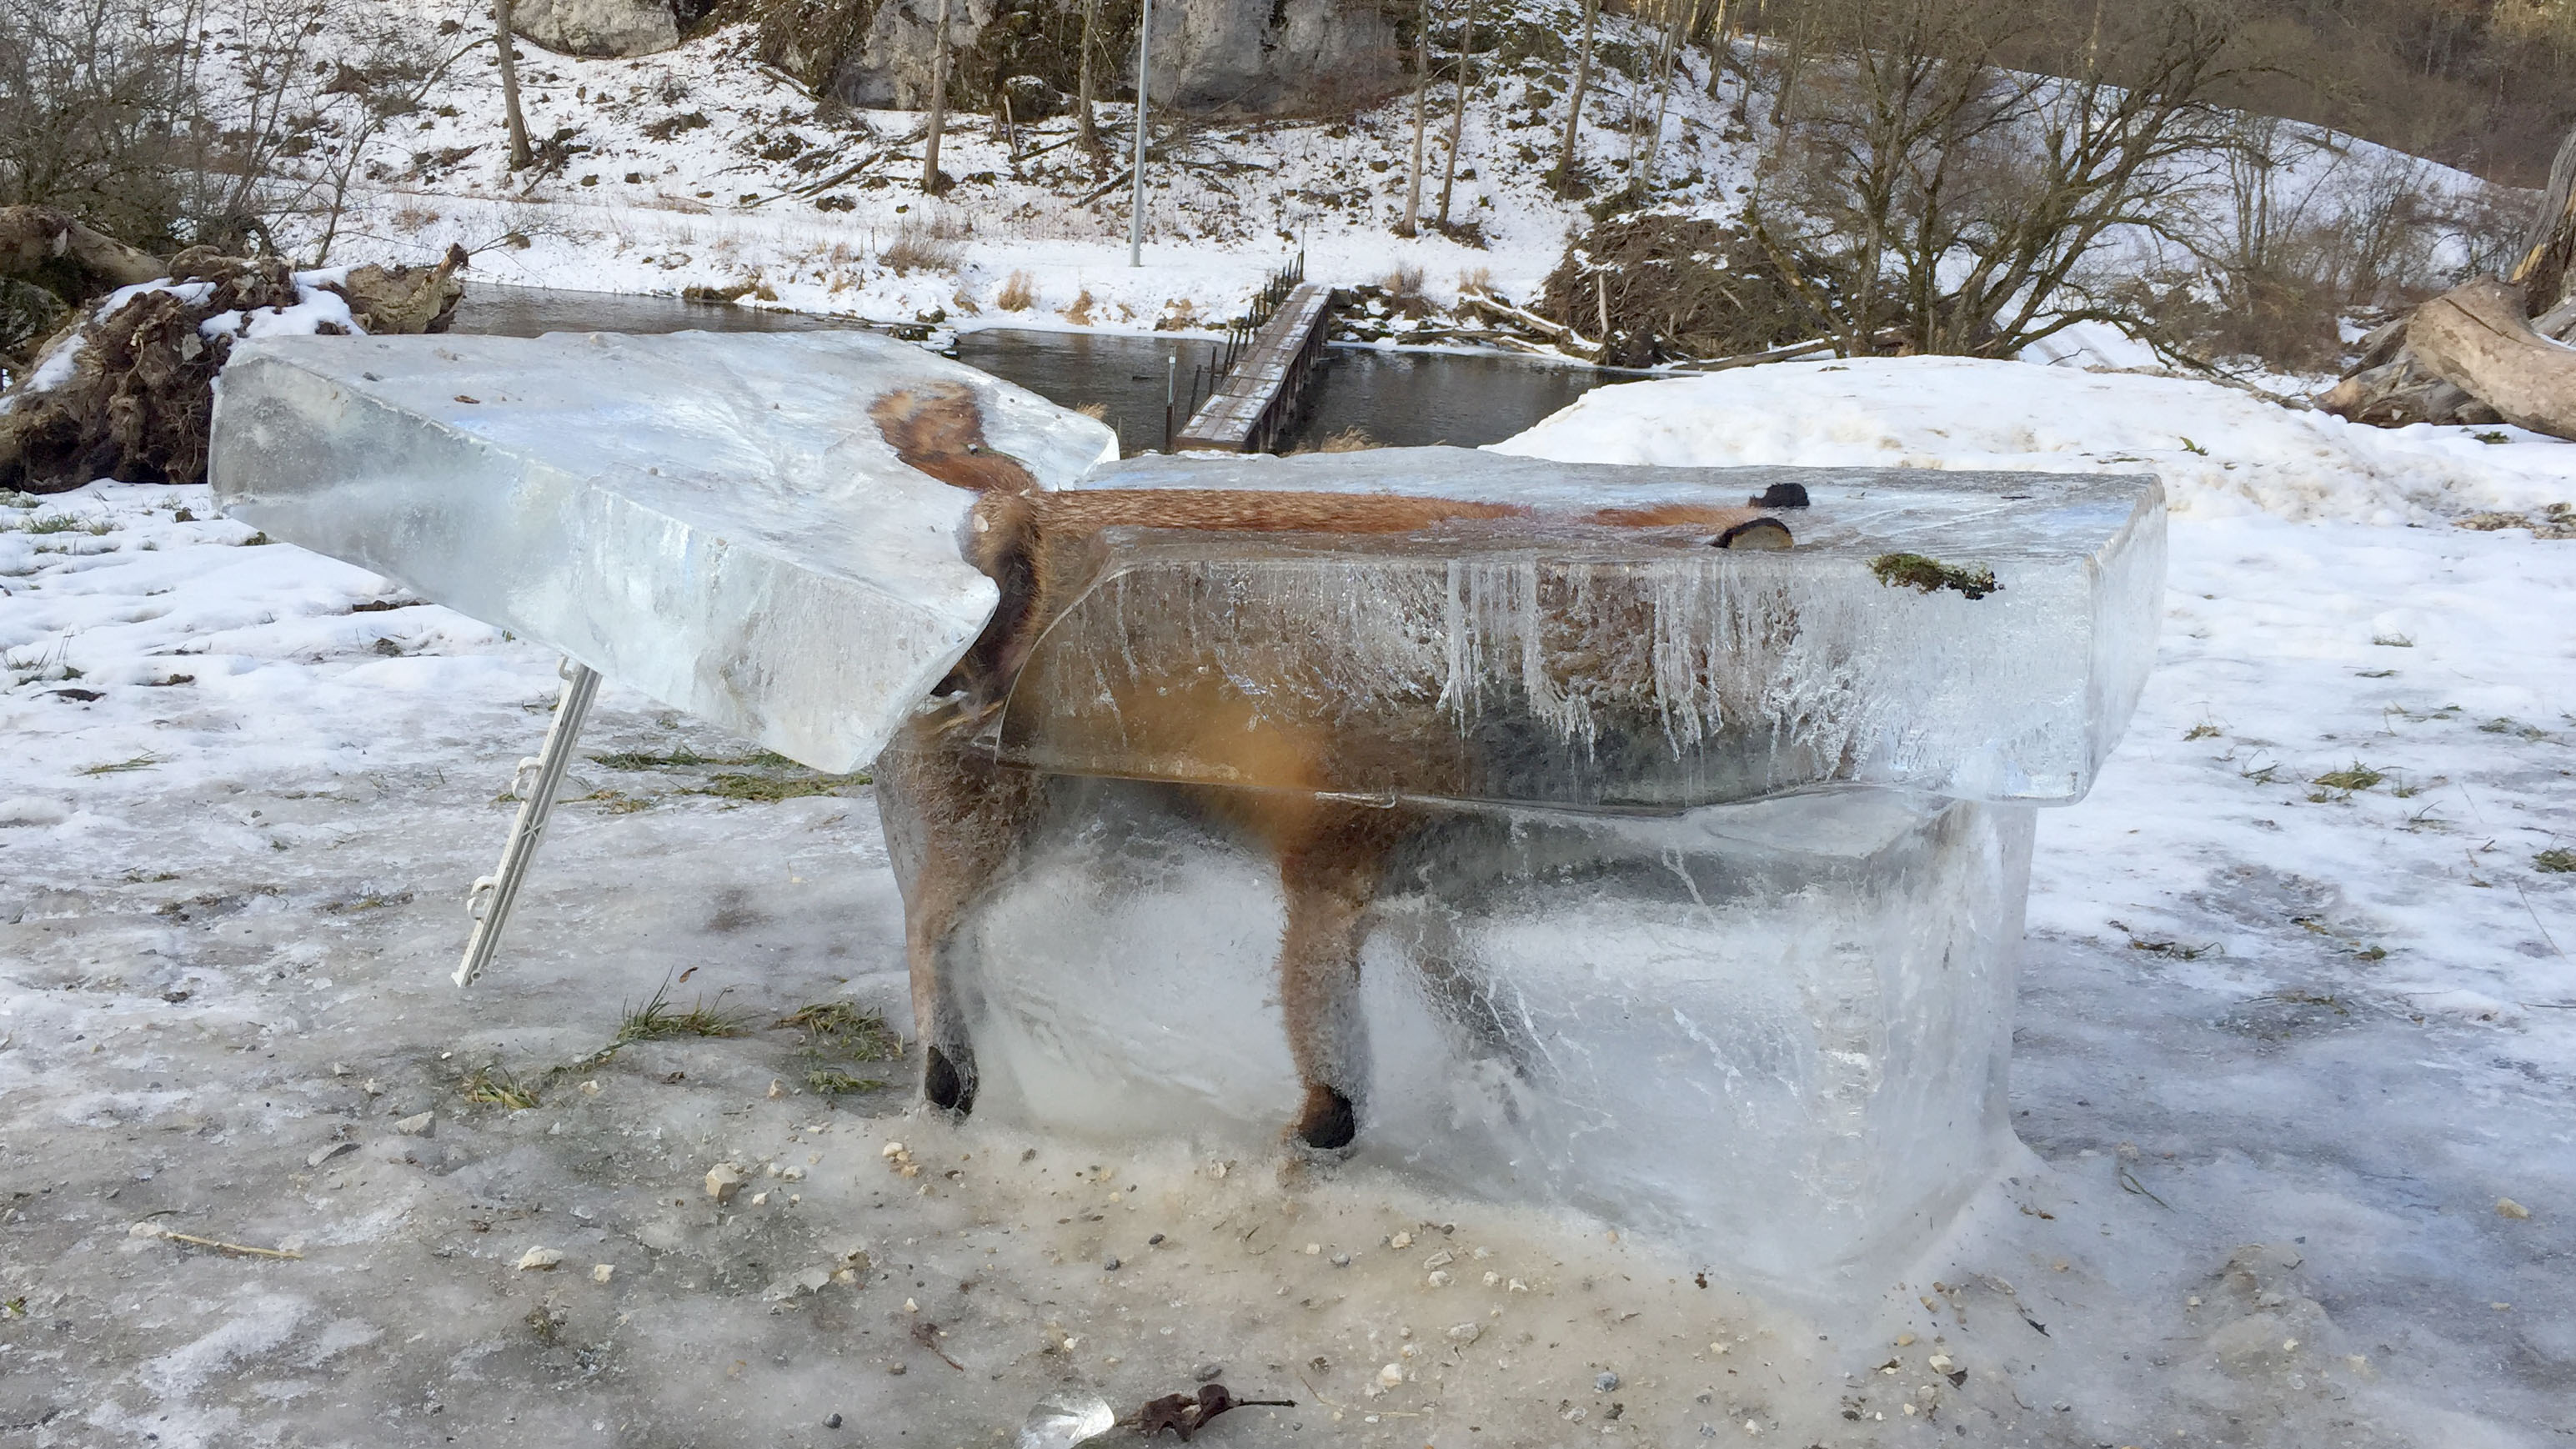 Fox found frozen in ice during Europe's icy winter